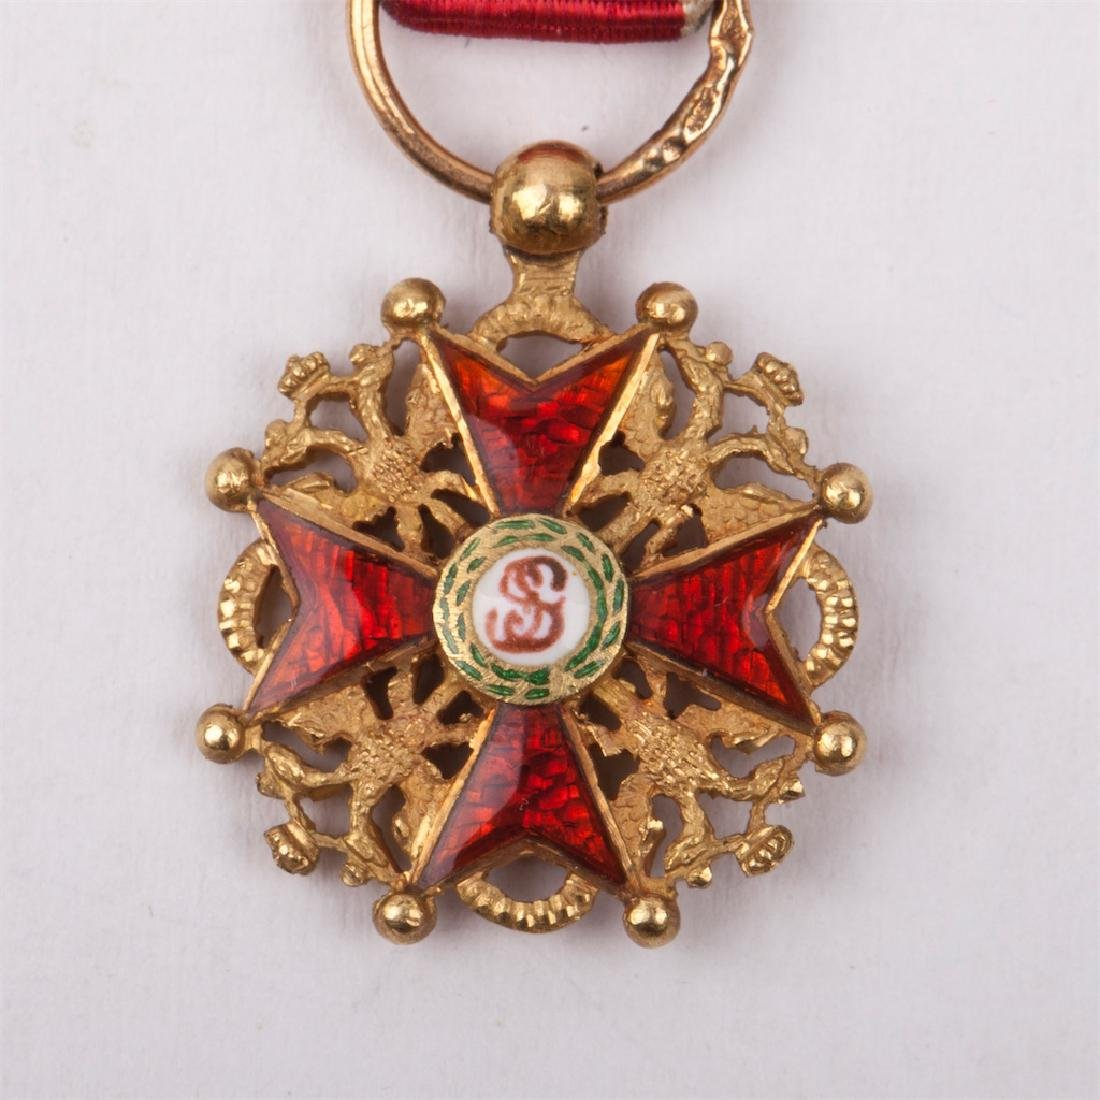 Miniature Imperial Order of St Stanislaus - 2